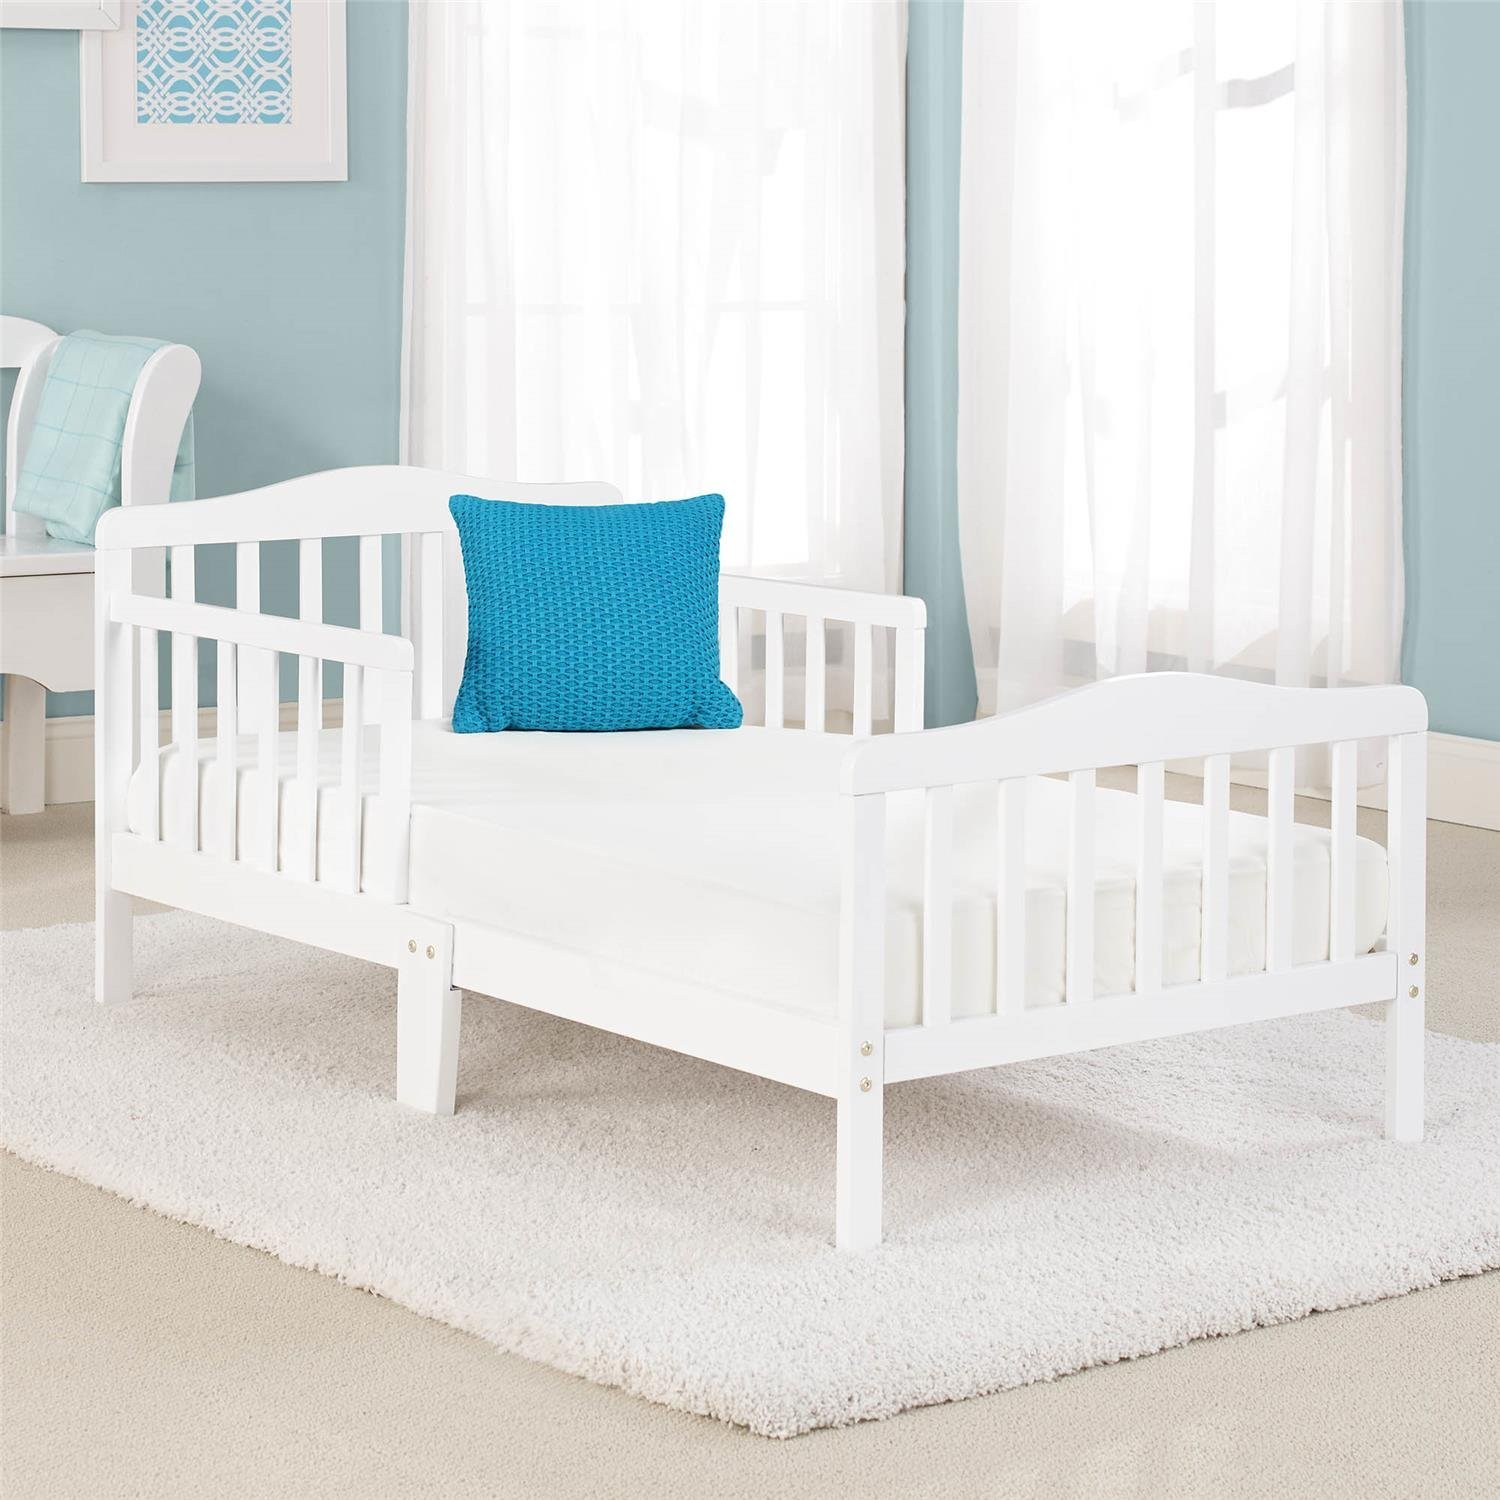 big oshi contemporary design toddler bed white